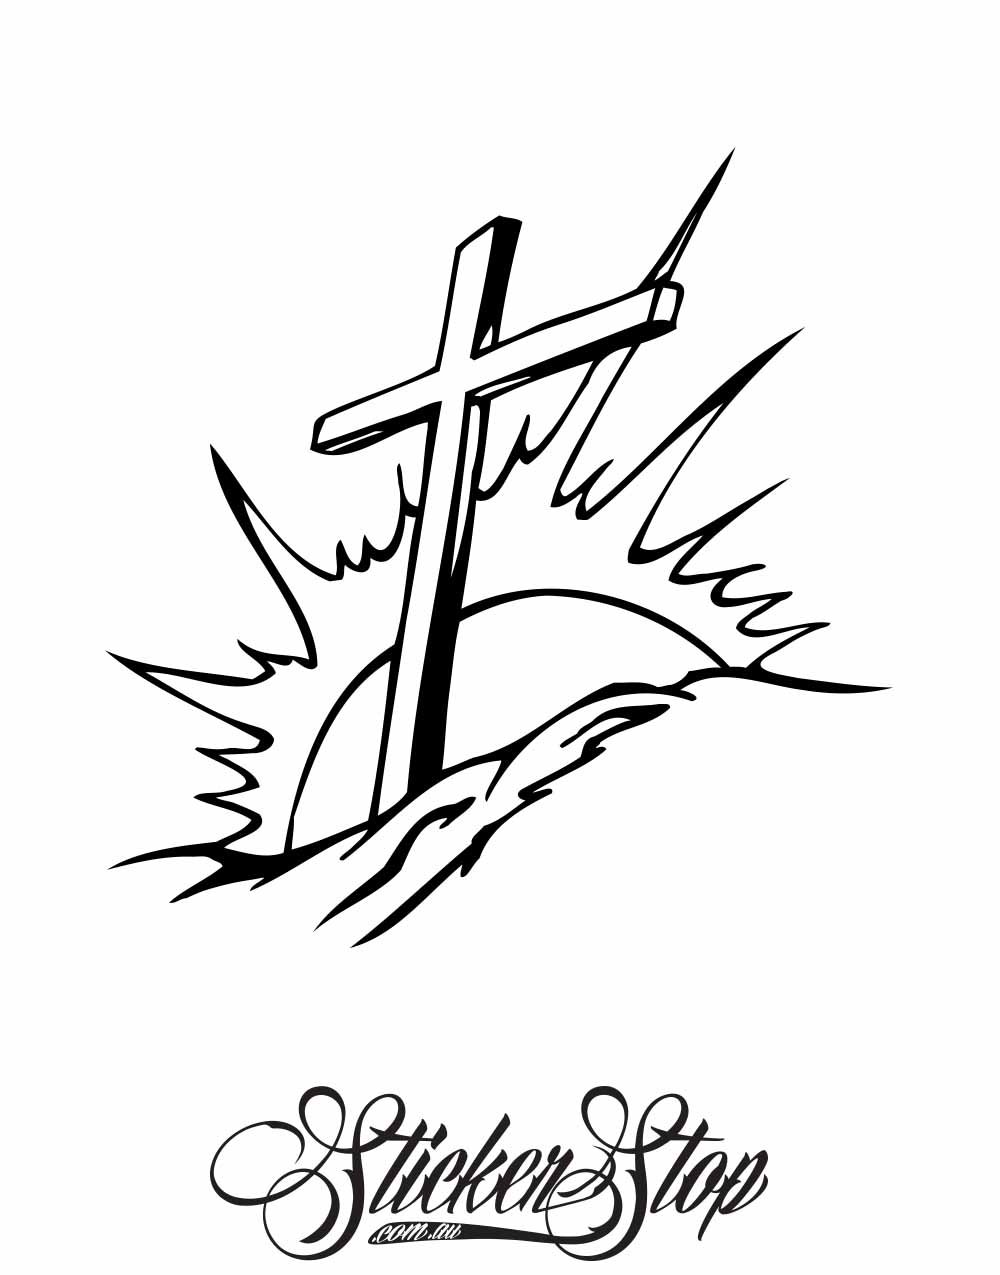 Religion Christian Vinyl Sticker | Weather-proof | 8-year life